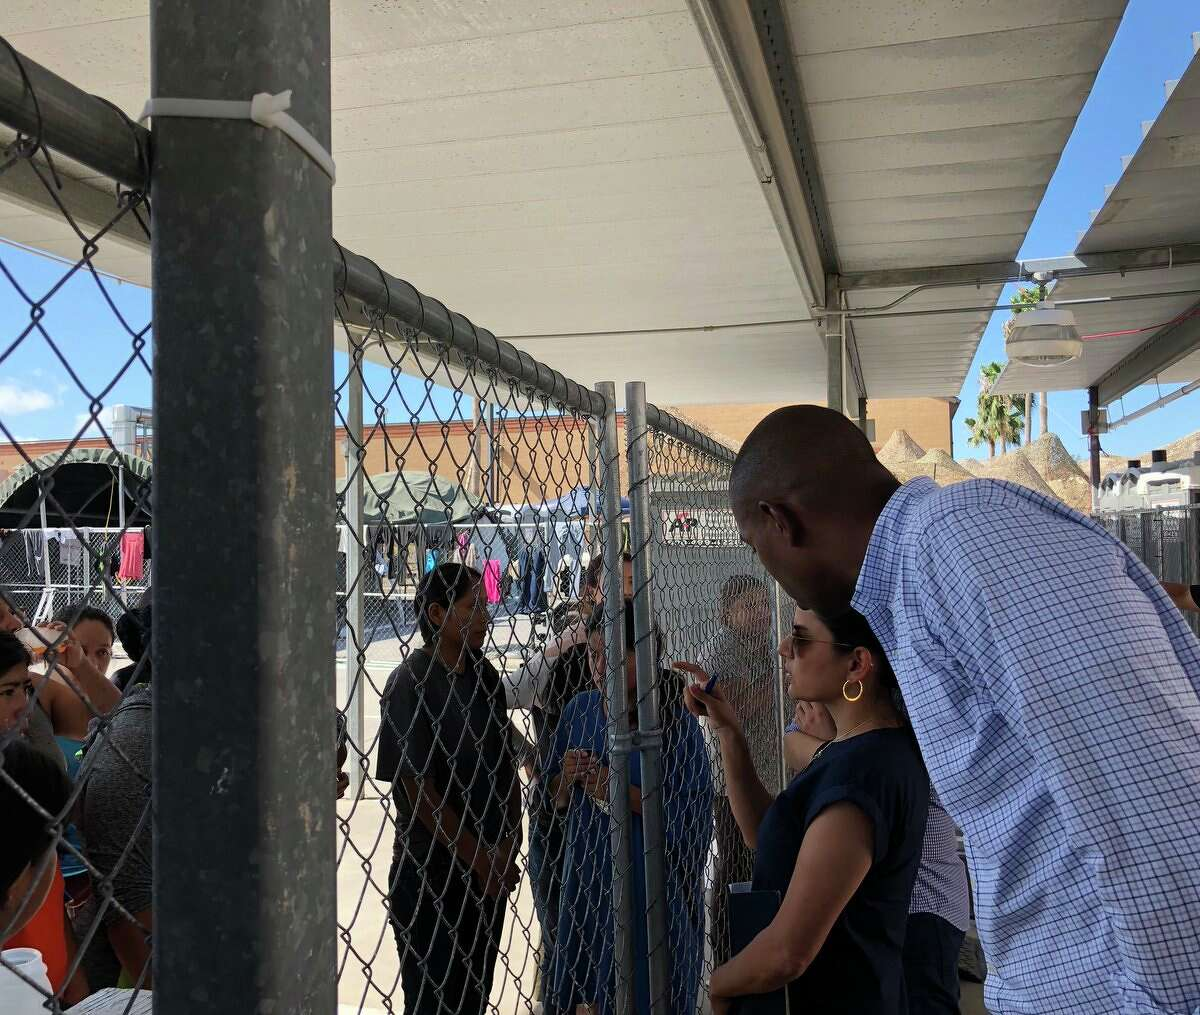 U.S. Rep. Antonio Delgado, a Democrat from the 19th District, visited migrant detention facilities along the southern border near McAllen, Texas, on Friday, July 19, 2019.